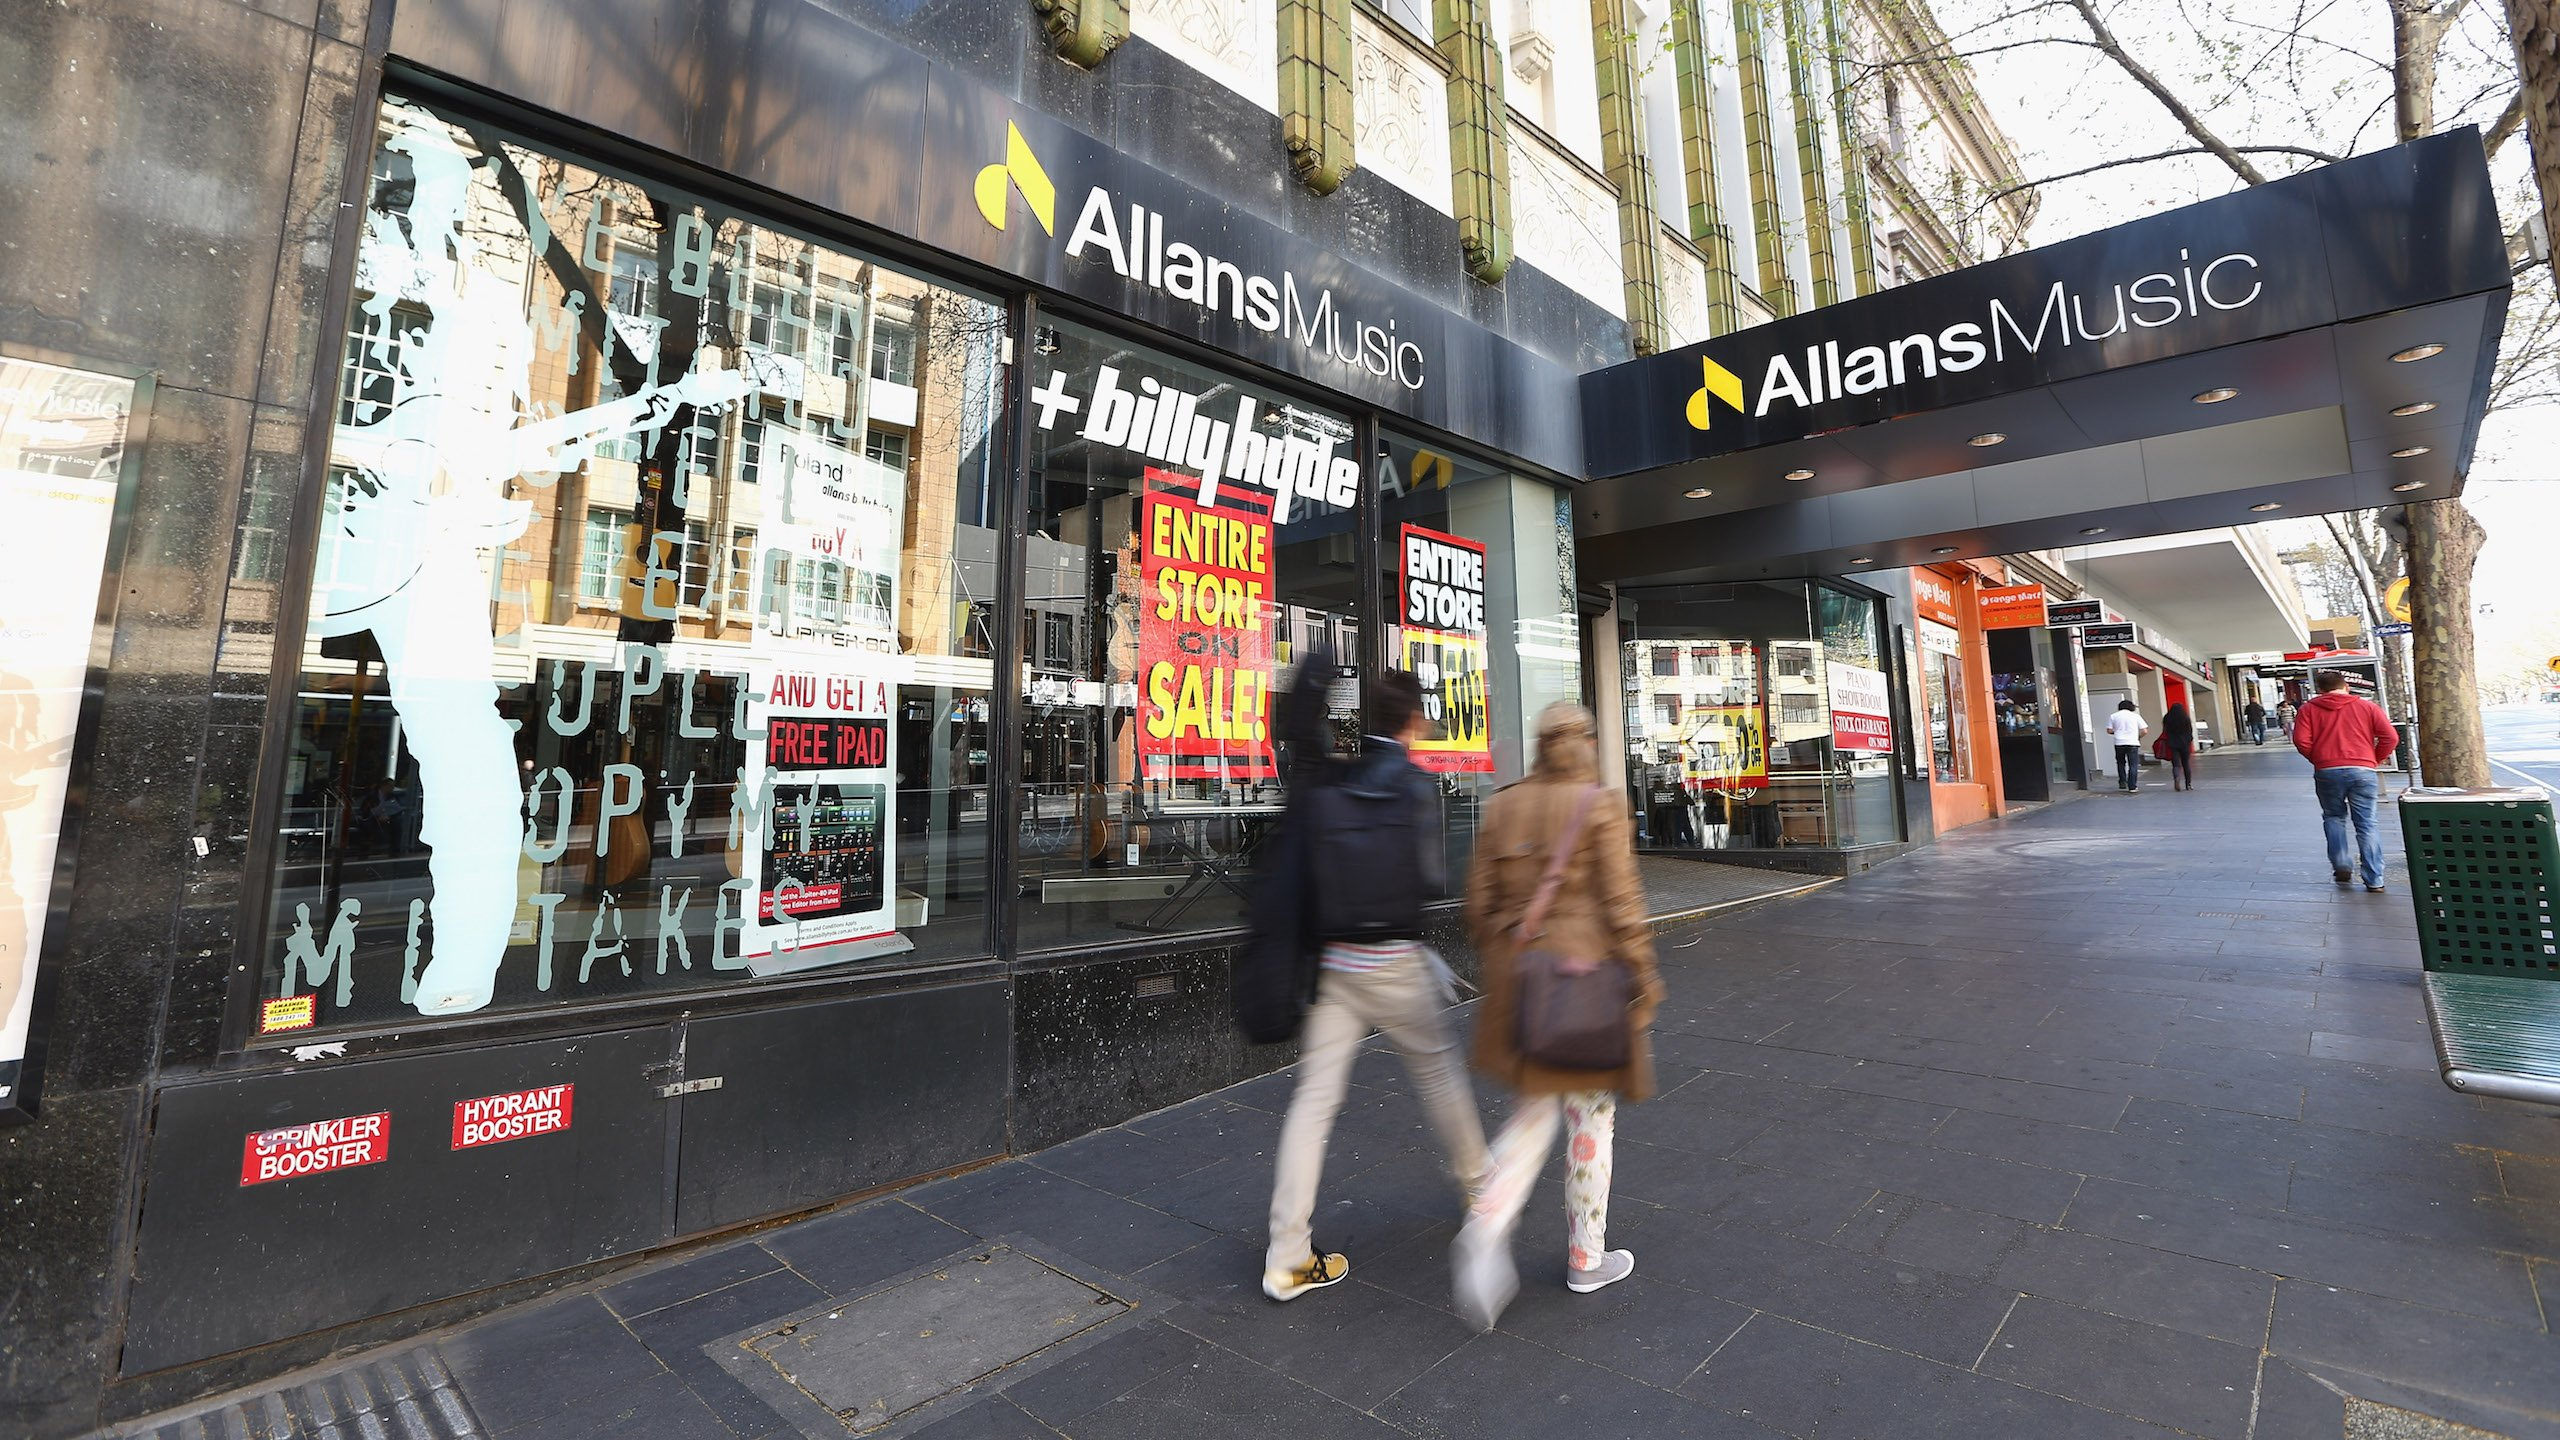 Allans Billy Hyde Staff Owed Thousands In Unpaid Wages, As